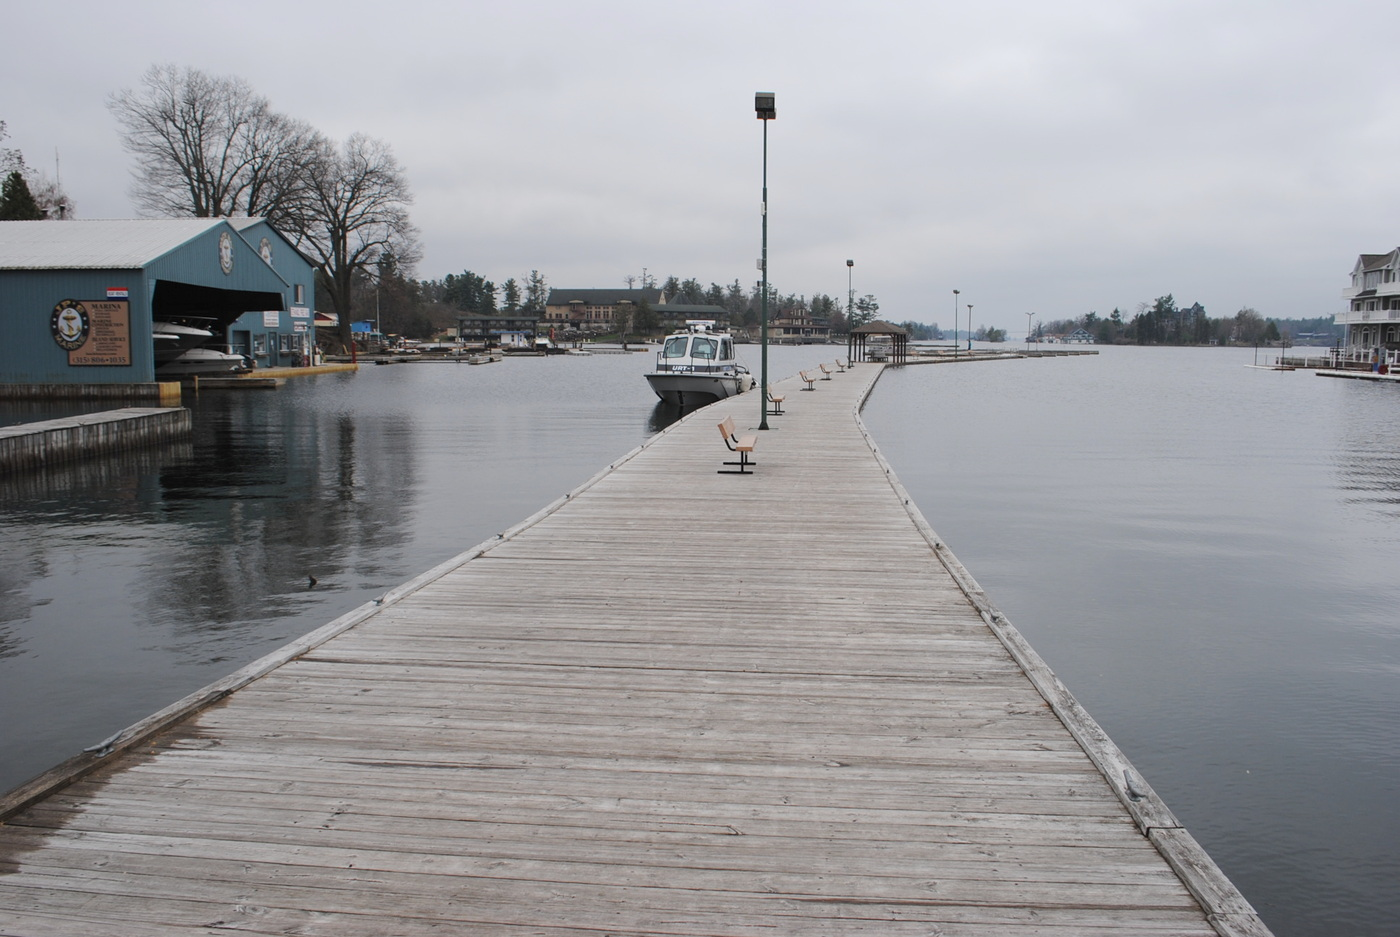 The docks in Alexandria Bay aren't flooded yet, but the St. Lawrence River is forecast to keep rising. Photo: Emily Russell